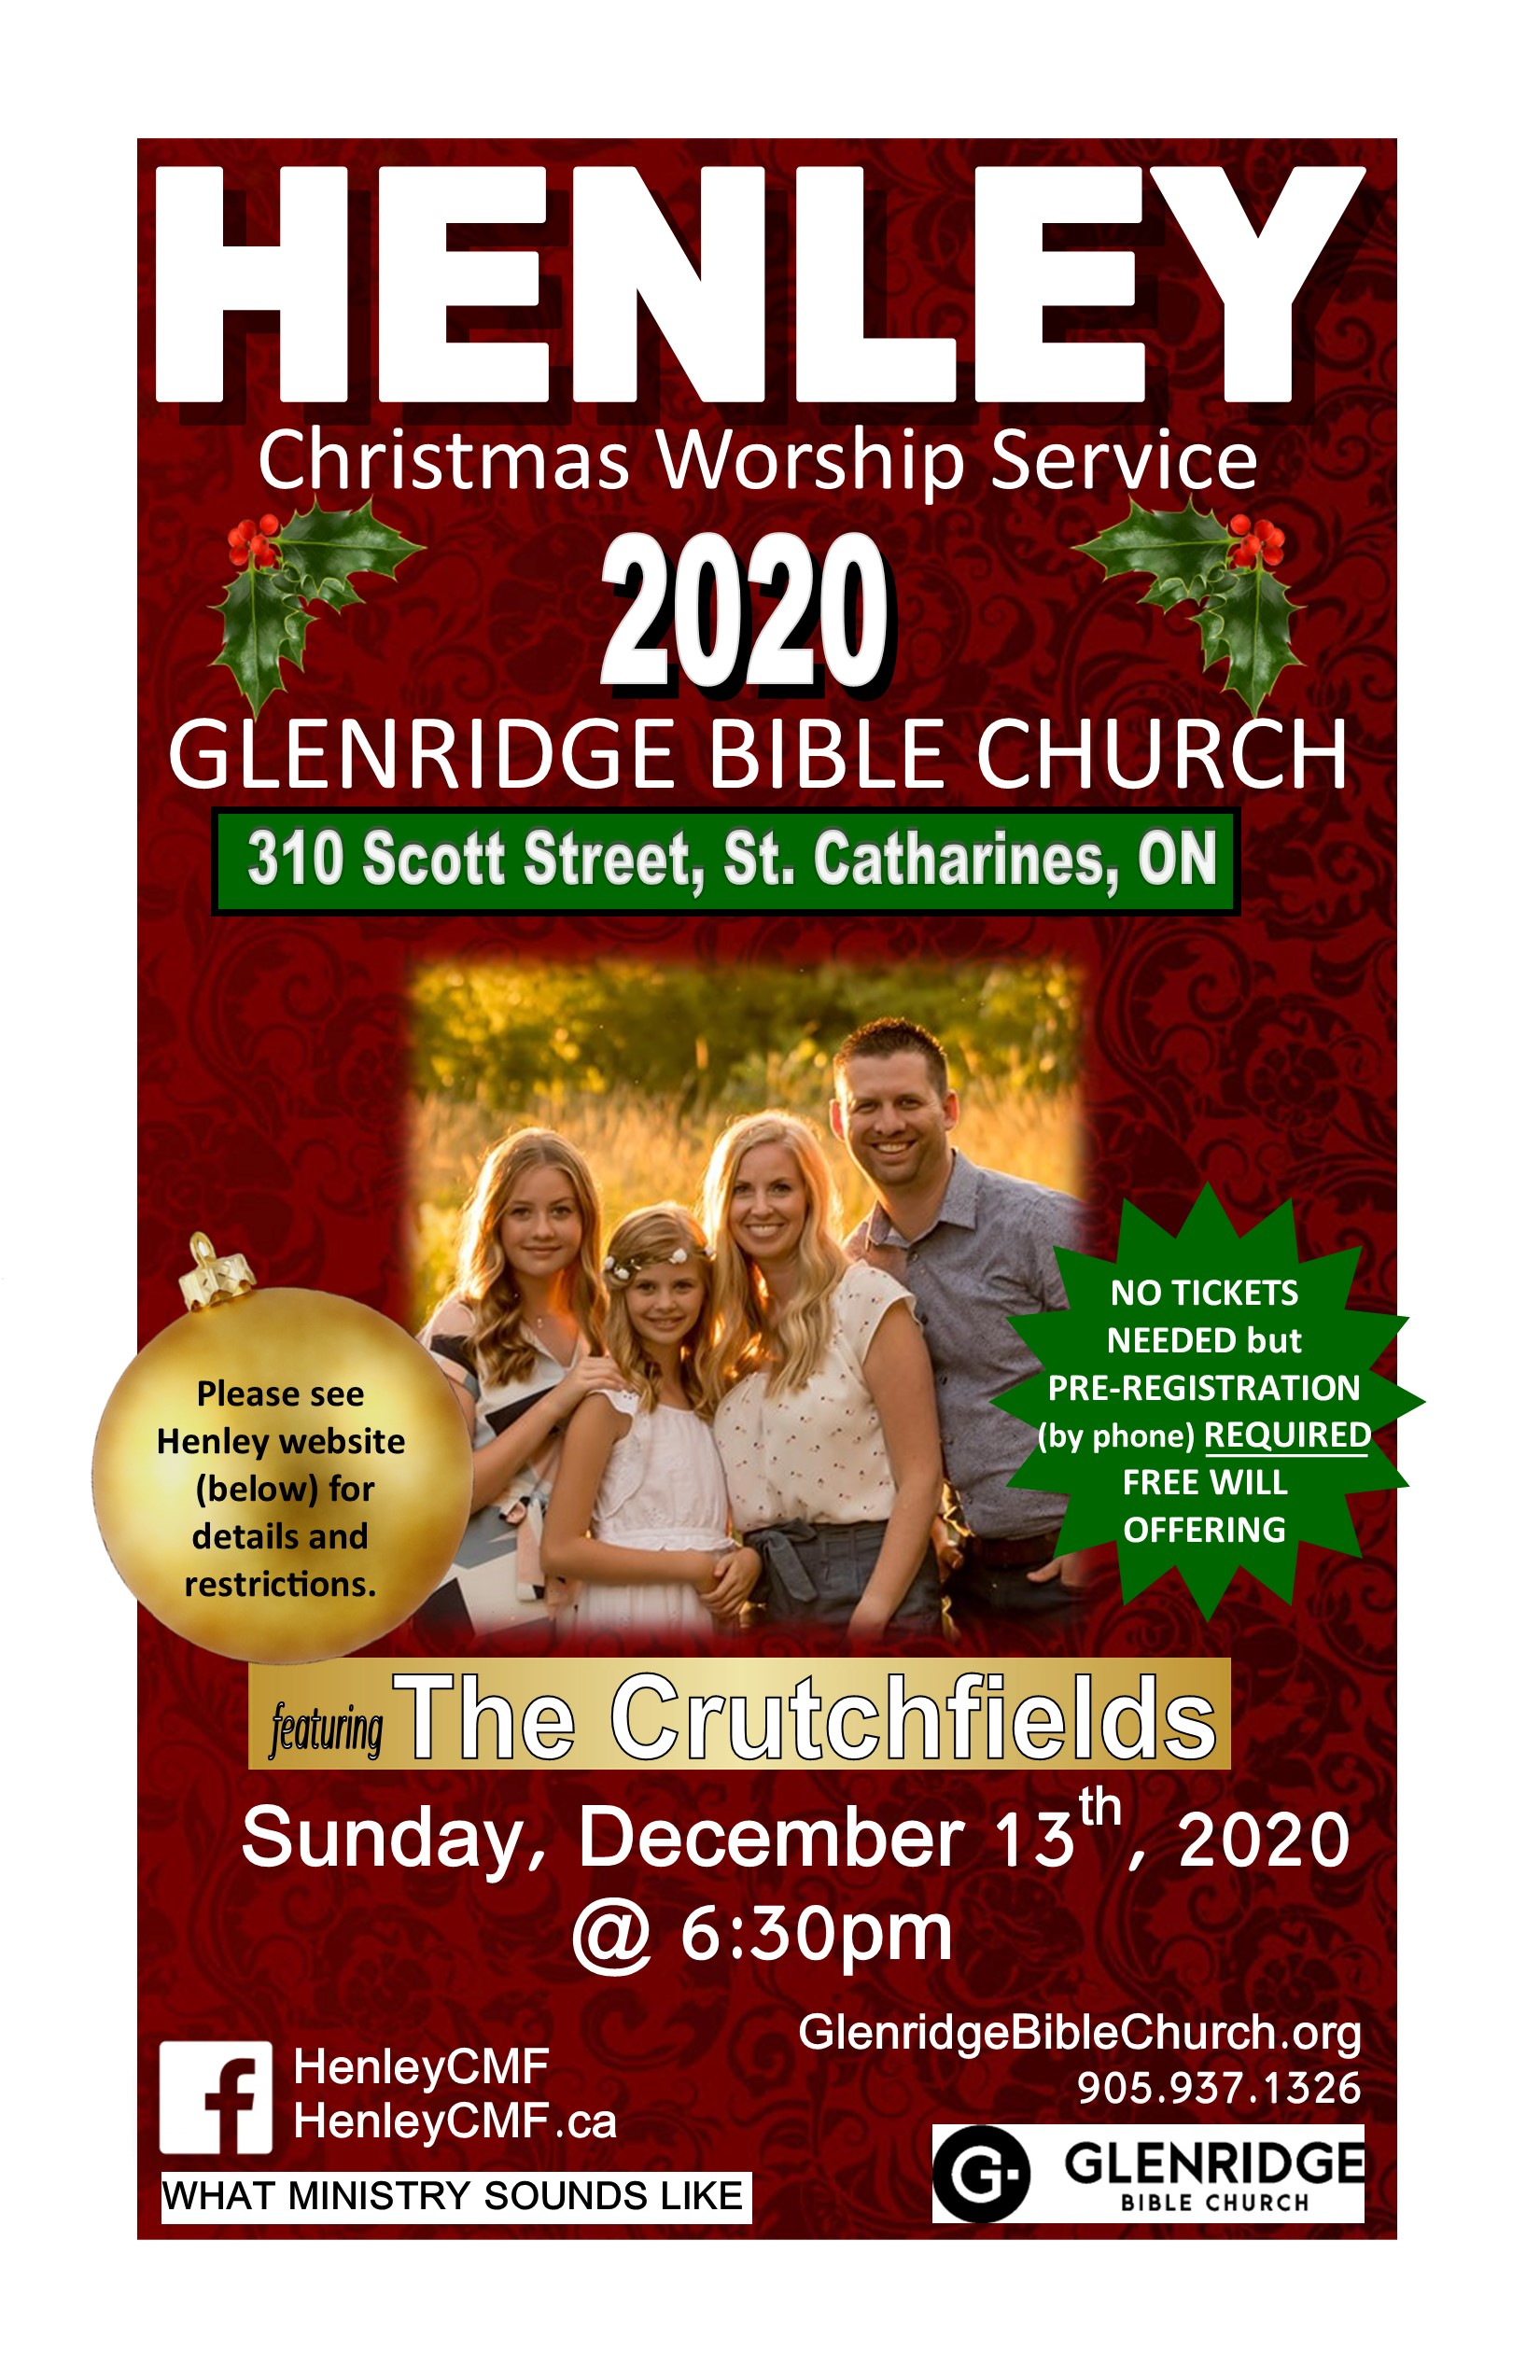 Henley Christmas Worship Service featuring the Crutchfield Family